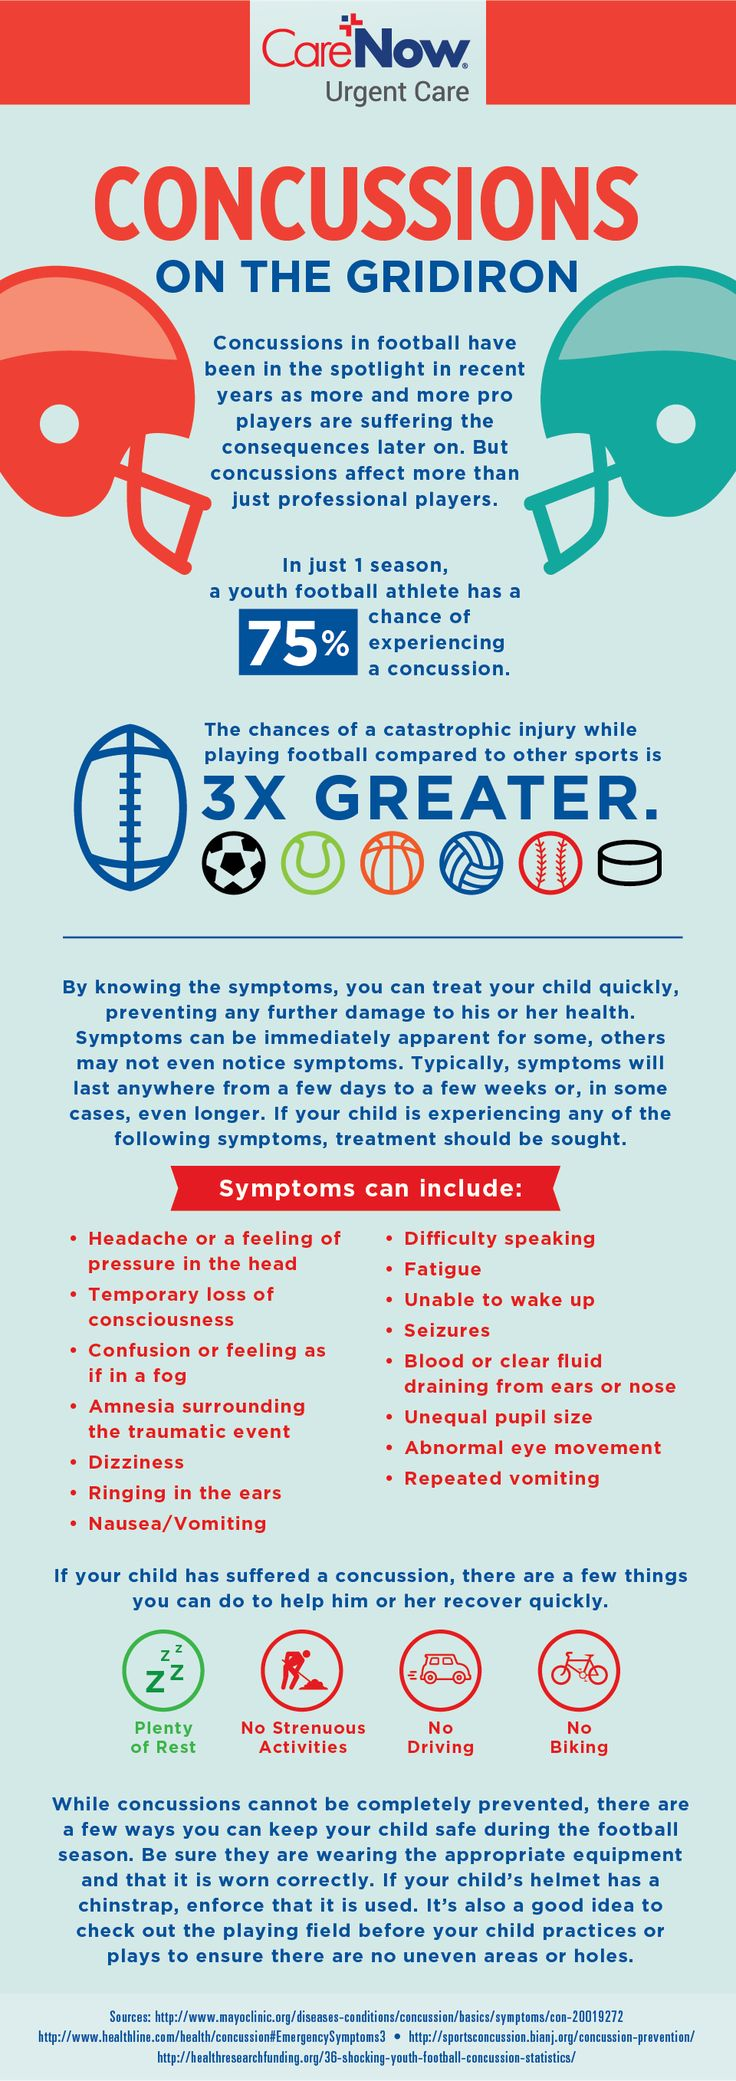 By knowing the symptoms of #concussions, you can treat your child quickly, preventing any further damage. Learn more!